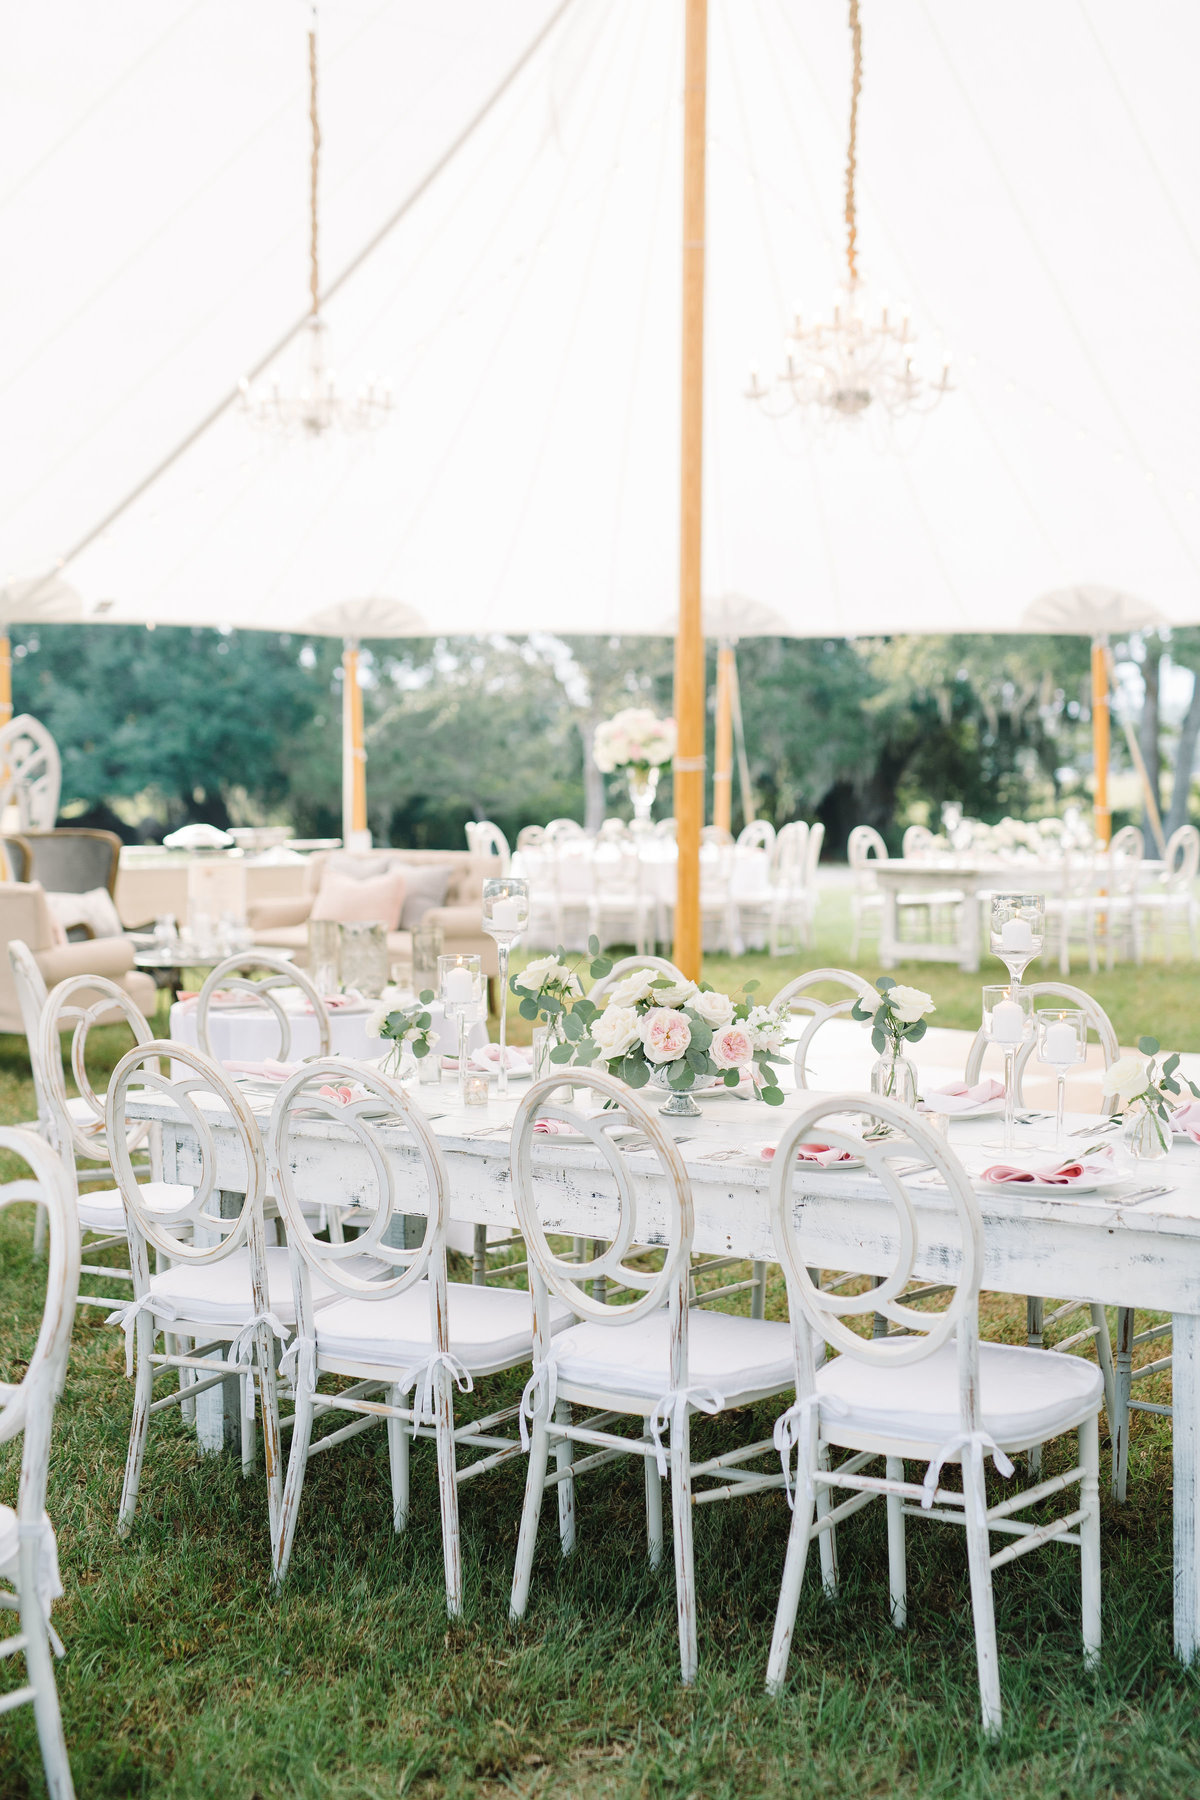 White and Blush Wedding Reception White Chloe Chairs wit Crystal Chandeliers under Sailcloth Tent at Boone Hall